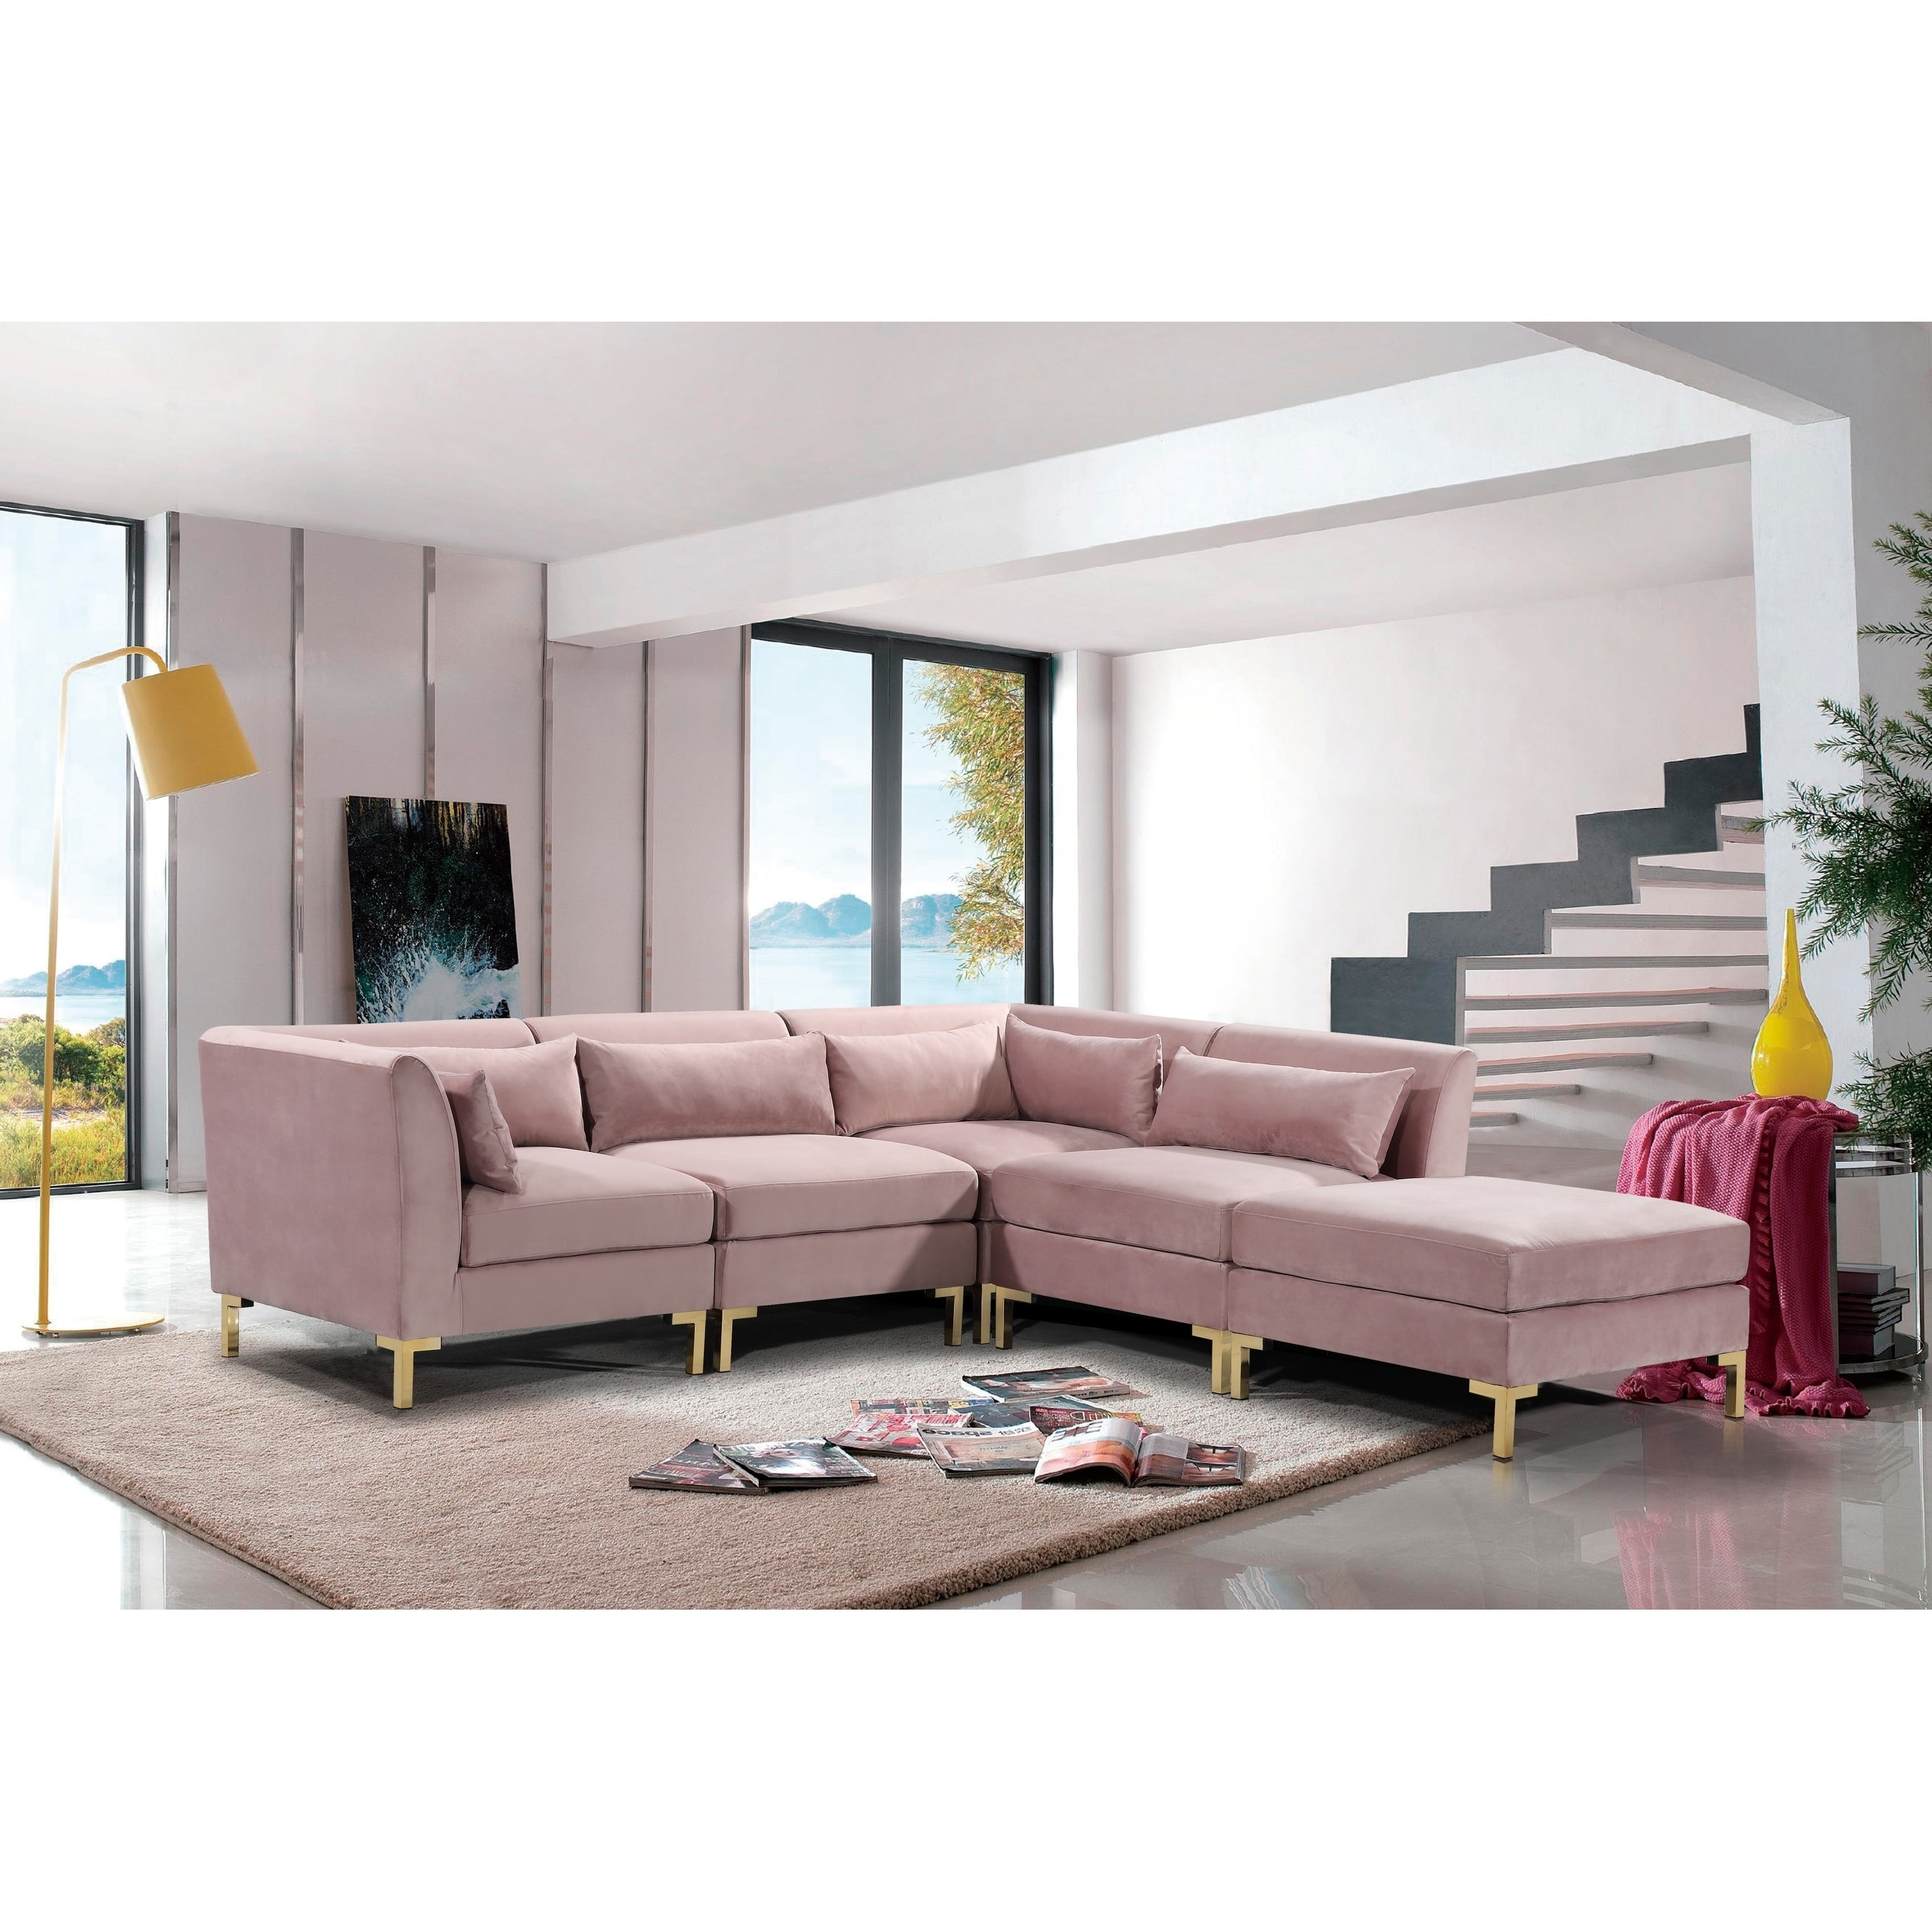 Shop Chic Home Guison Modular Chaise Sectional Sofa with 6 Throw ...